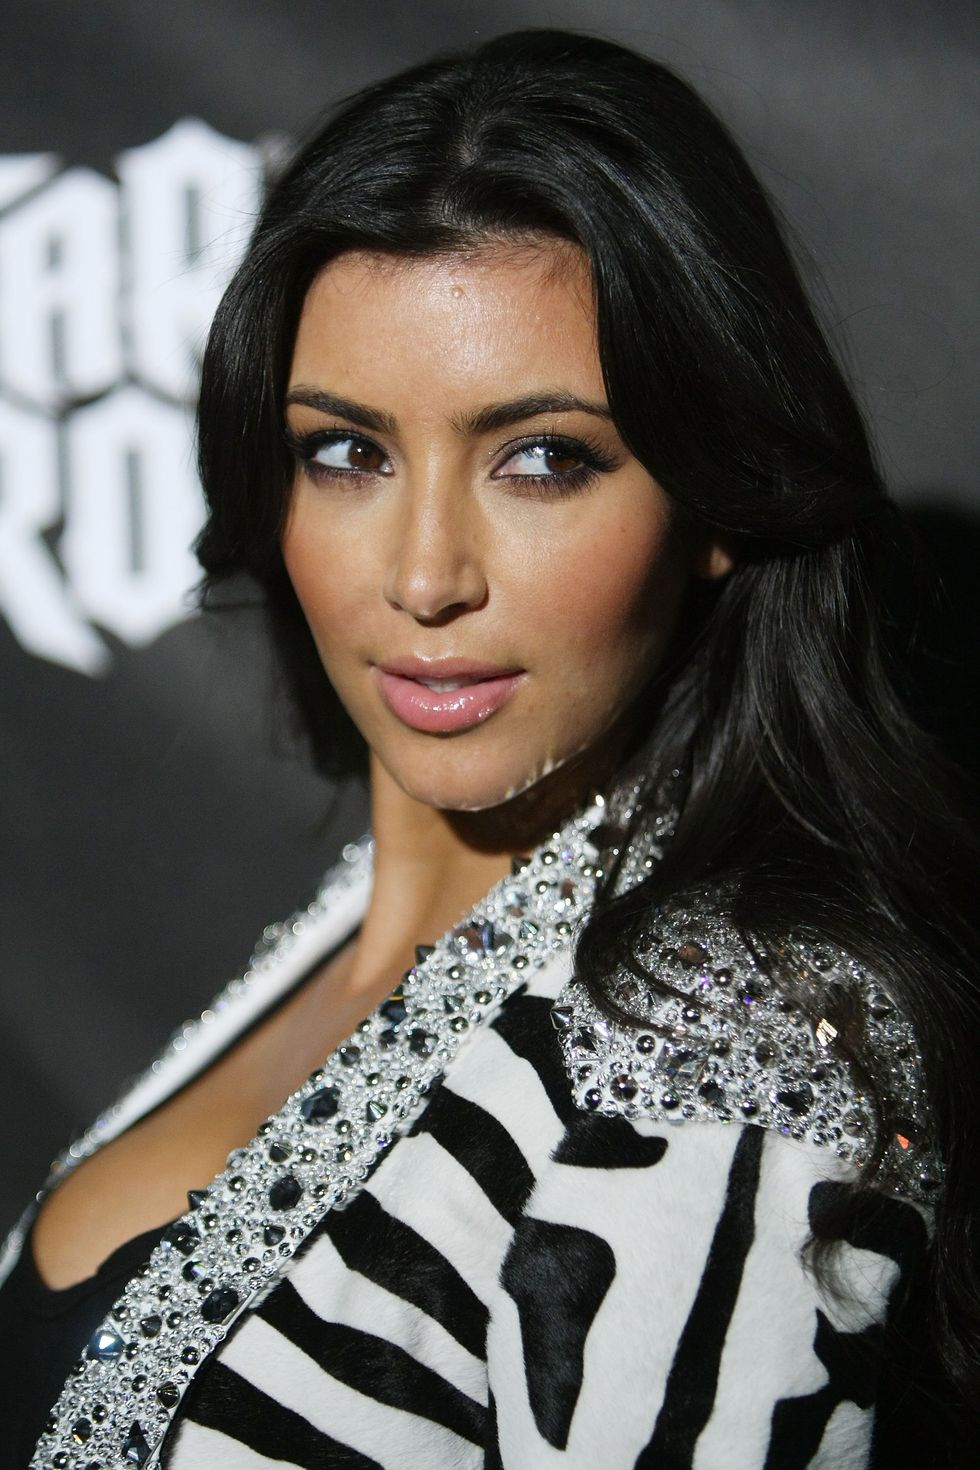 kim-kardashian-dj-hero-launch-in-los-angeles-01